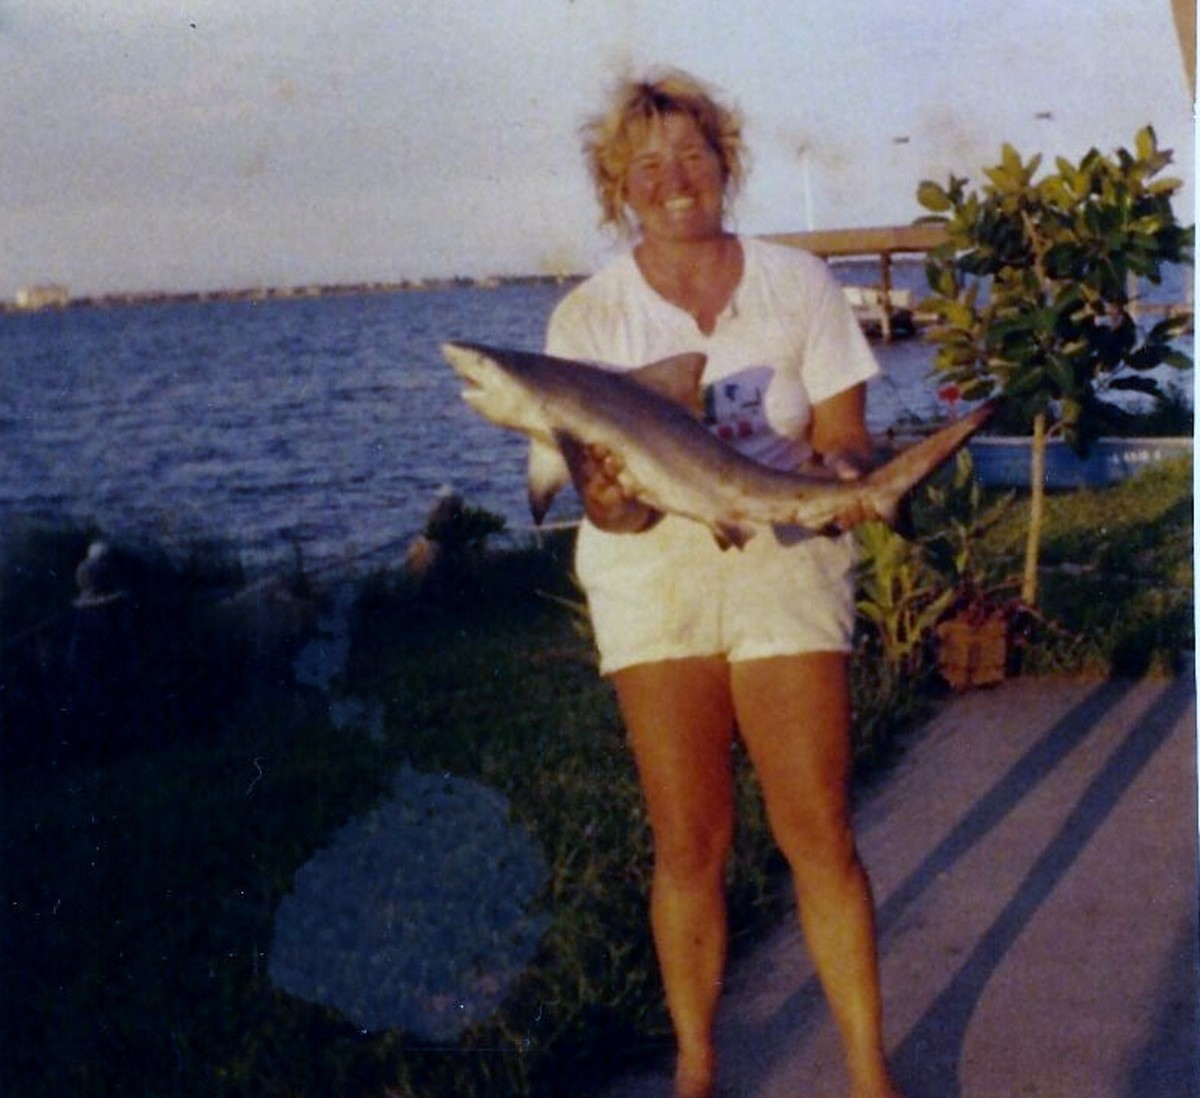 Black Tip Shark-You can sure tell I was in the fresh salt air all day. LOL The salt air makes your hair stiff.